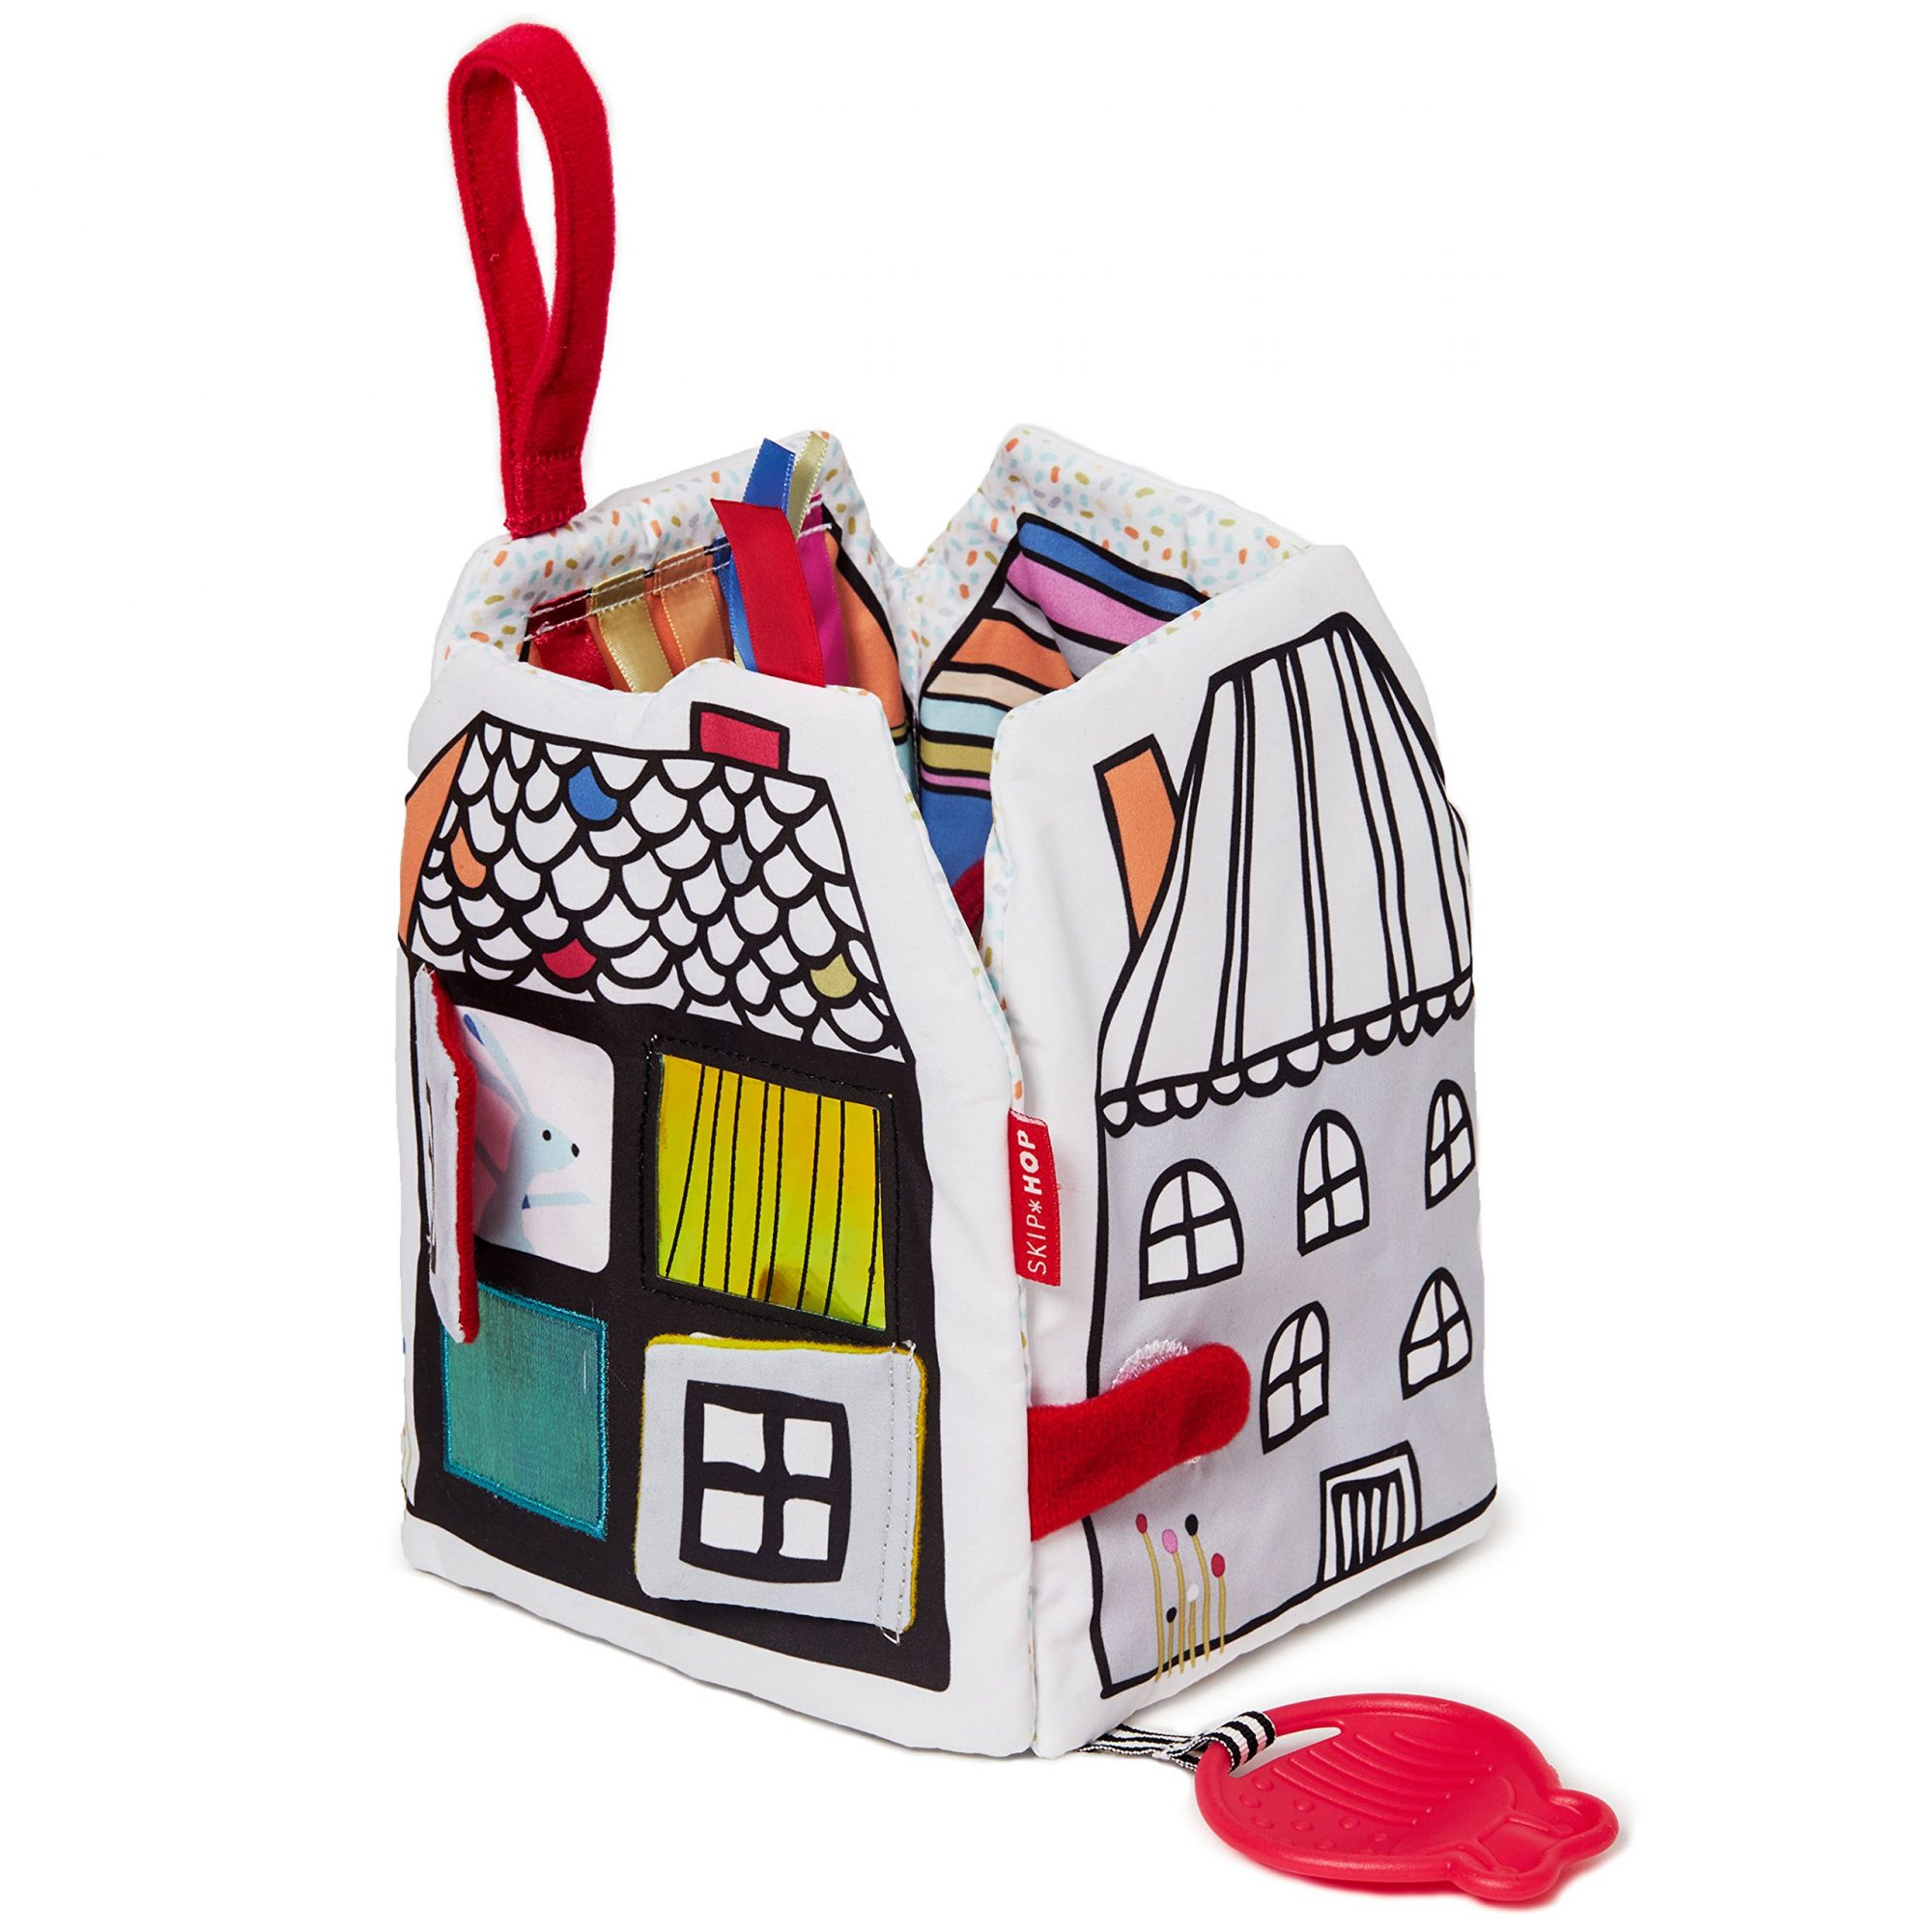 picture-of-activity-book-house-photo